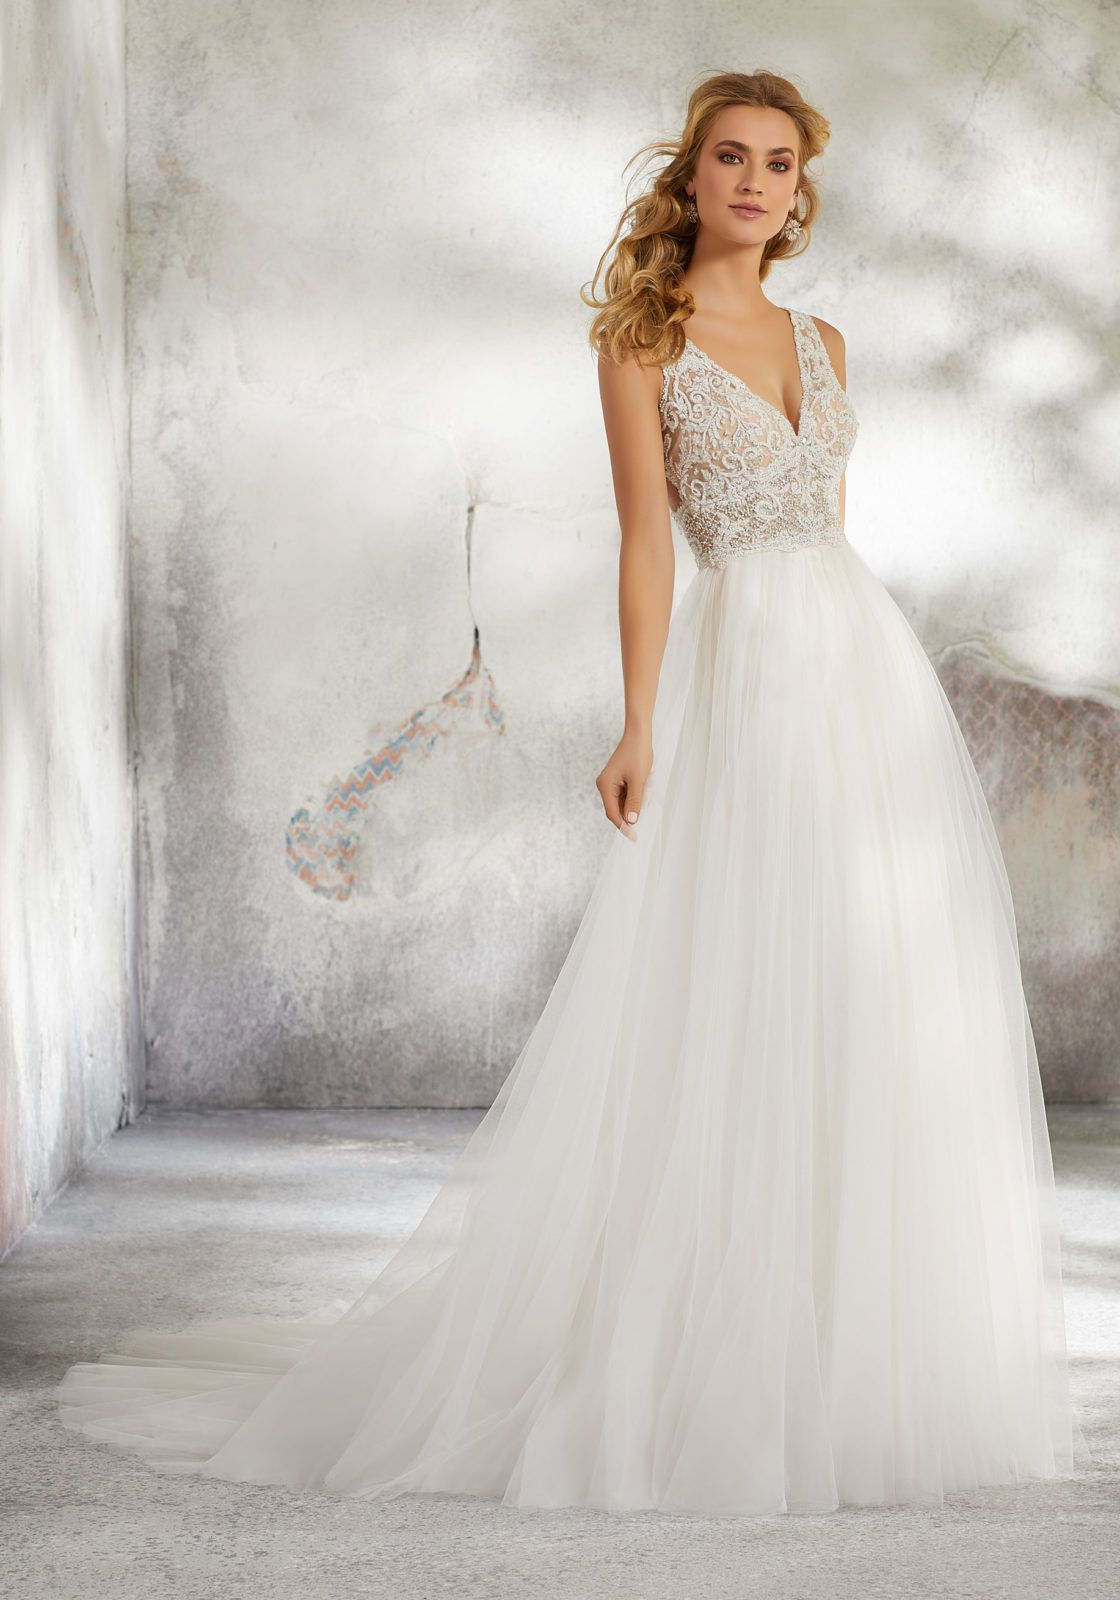 a602ac7d9eee Dreamy Bridal Ballgown Featuring a Soft Tulle Skirt and Crystalized  Embroidered V-Neck Bodice. An Open Keyhole Back with Covered Buttons  Completes the Look.